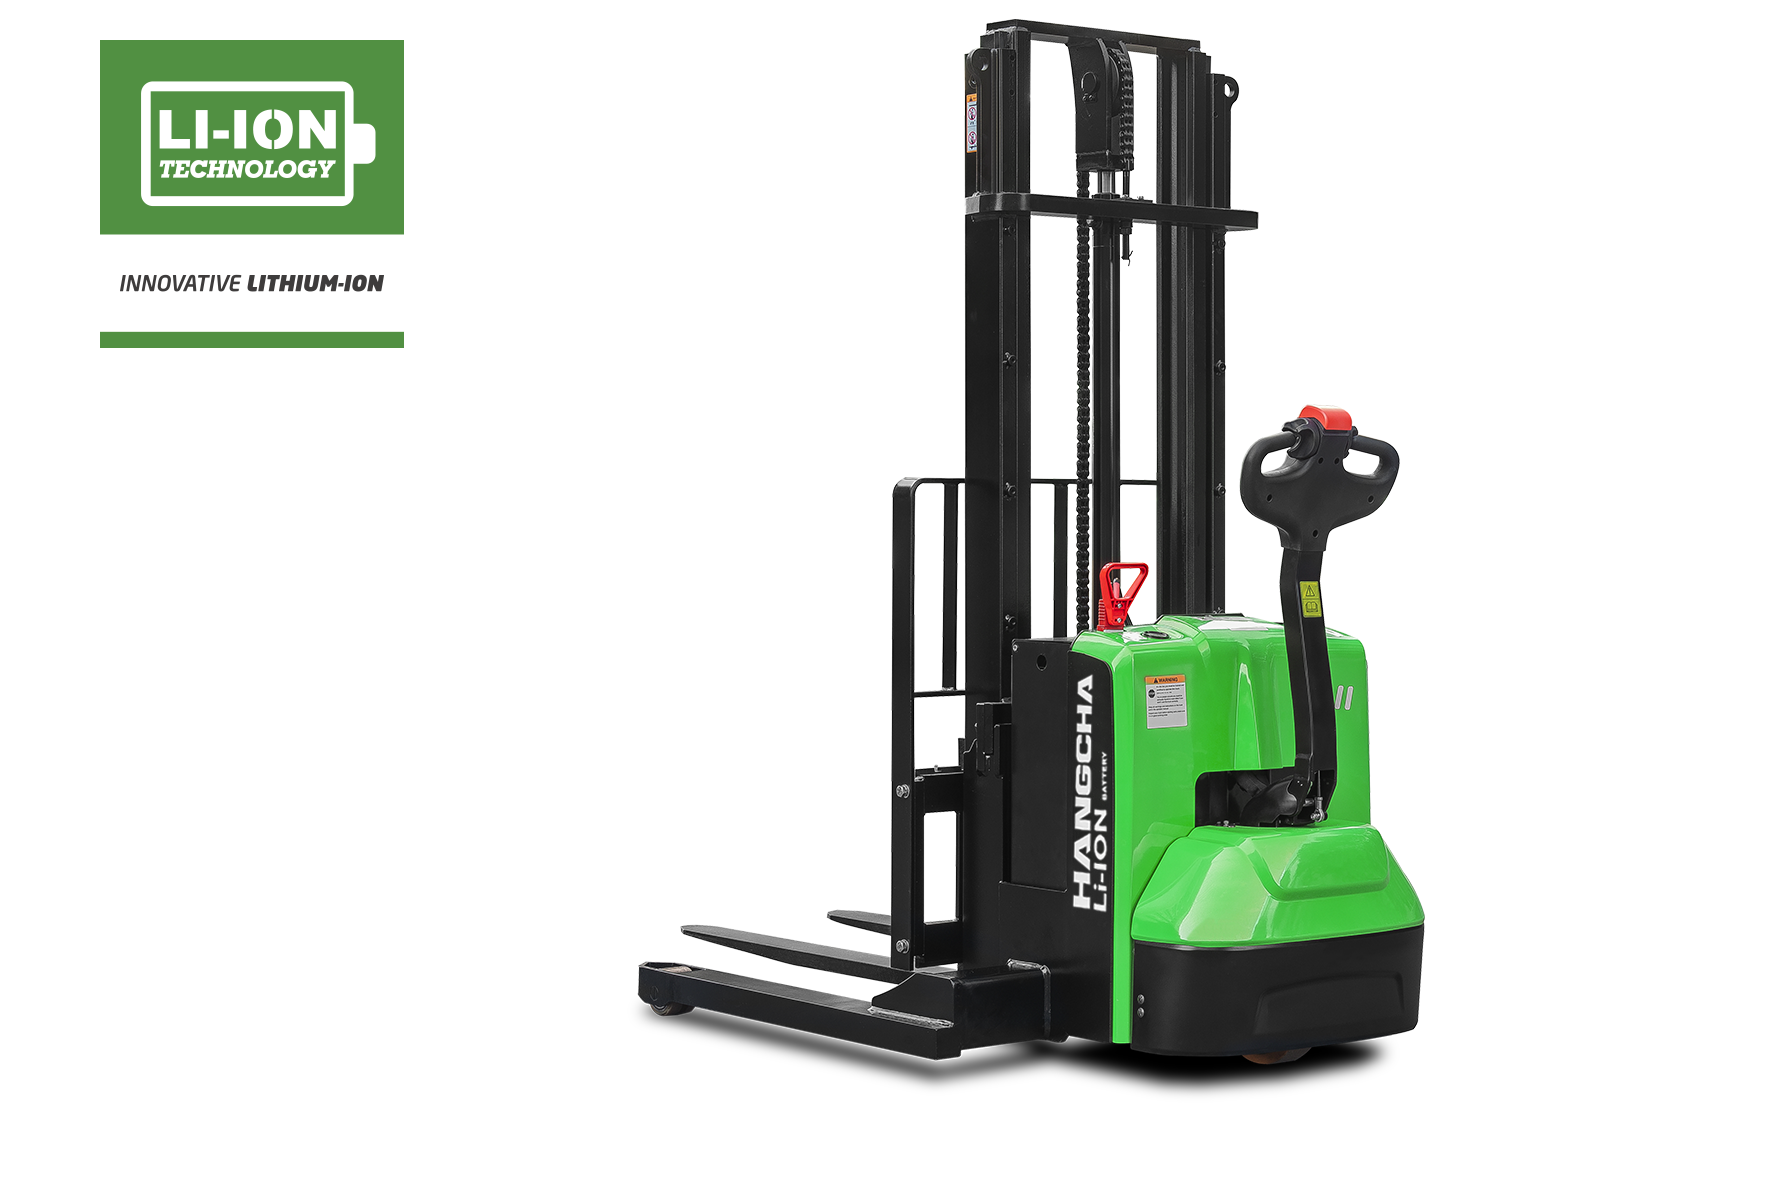 Electric Lithium-ion Walkie Straddle Stacker 2,500lbs